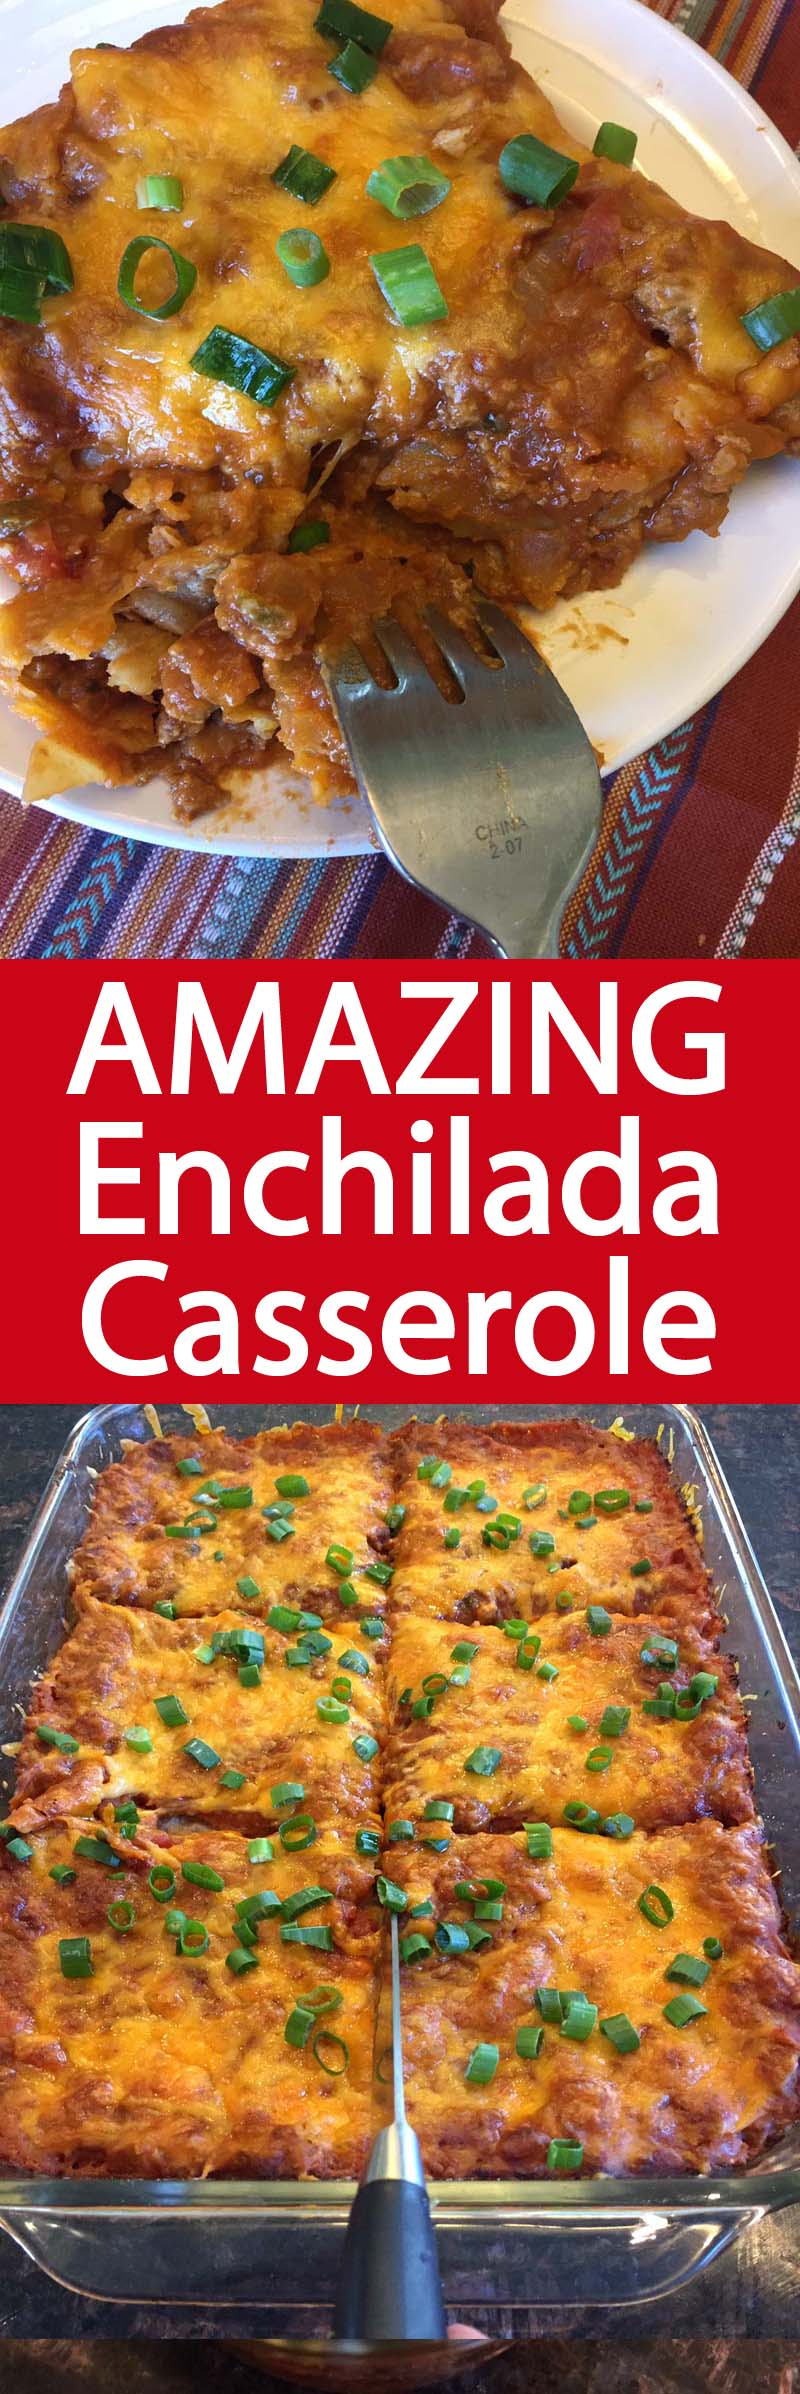 This easy Mexican enchilada casserole is amazing!  Made with ground beef, refried beans, salsa, corn tortillas and lots of shredded cheese! My mouth is watering!